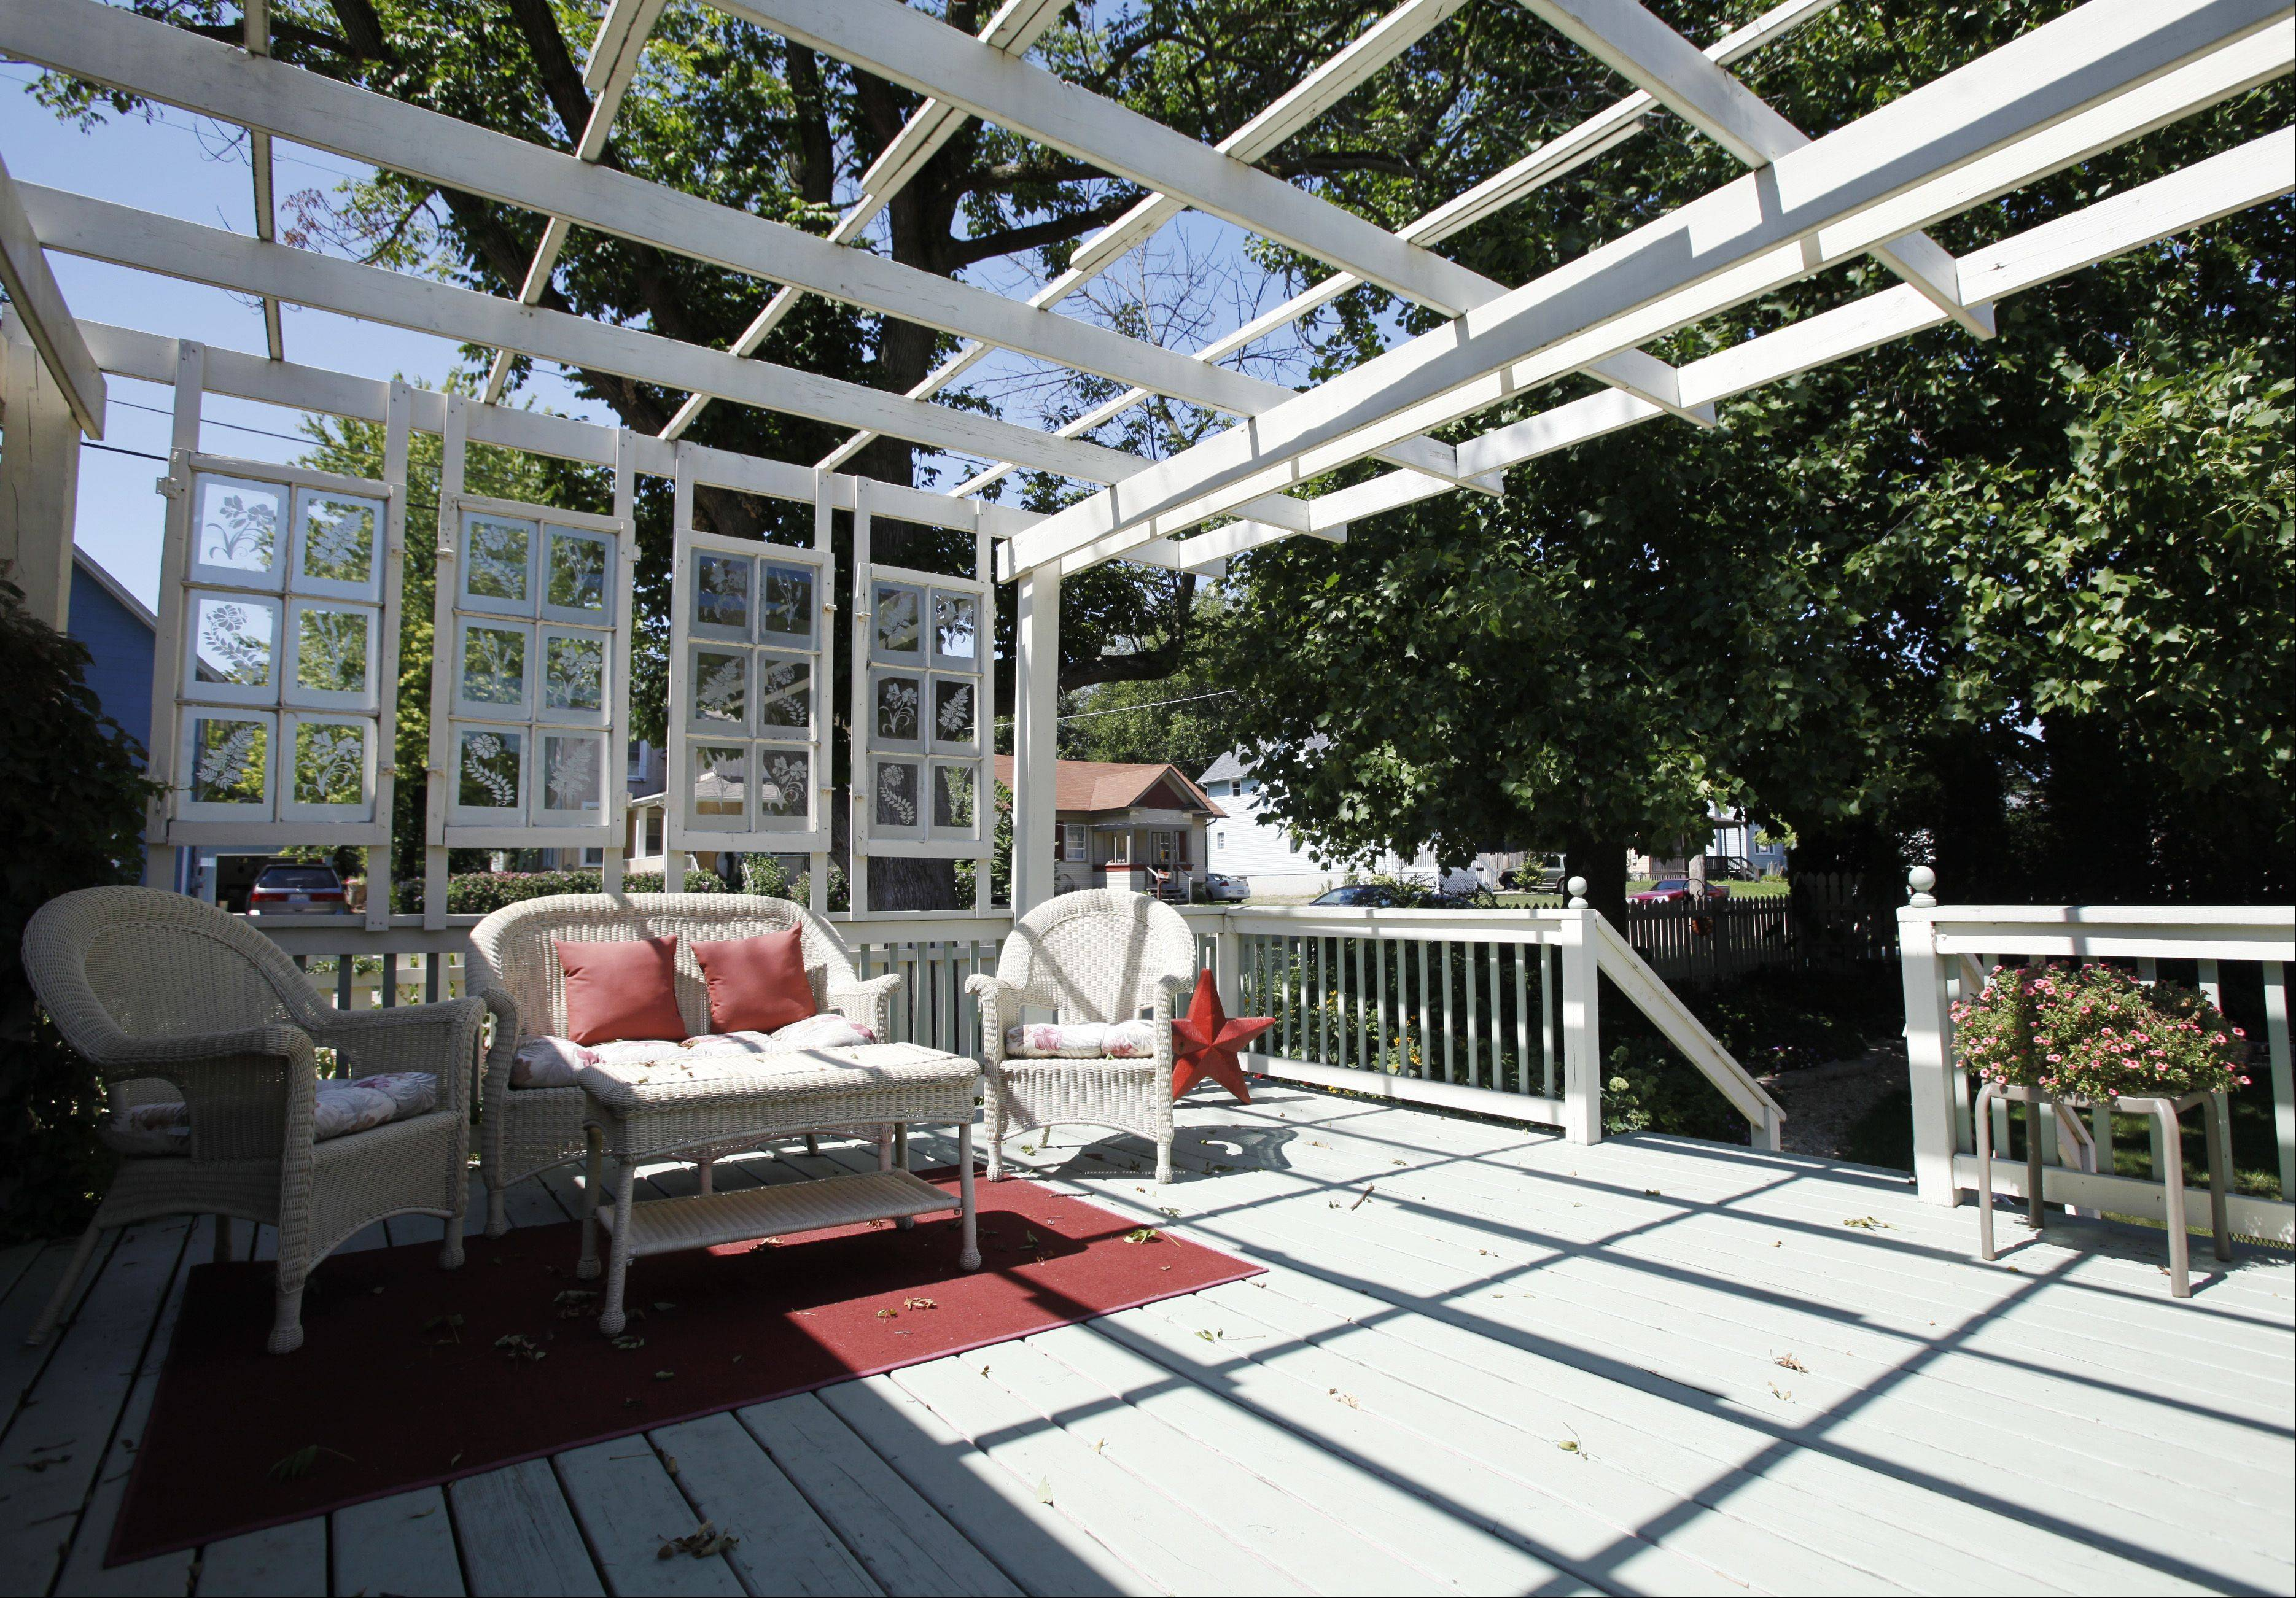 A large deck in the backyard, accented with hanging window frames and etched glass, is a focal point of relaxation at 670 Oak St. in Elgin.